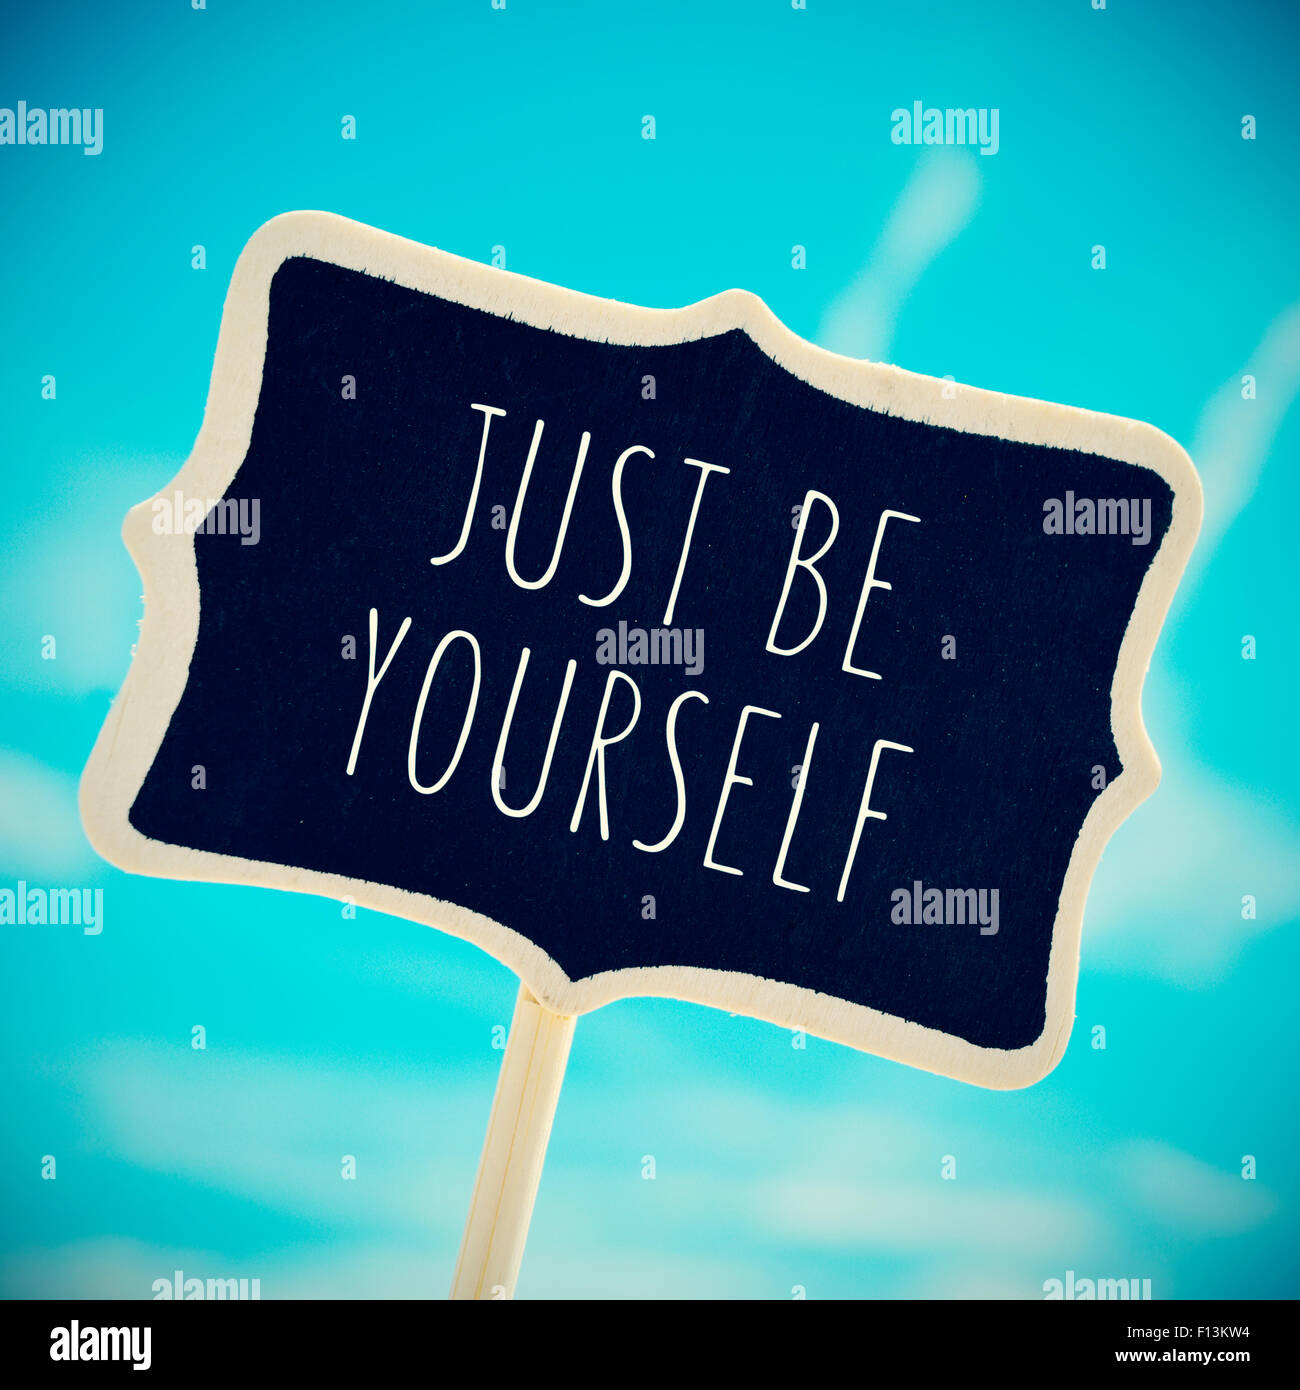 a chalkboard with the text just be yourself written in it against the blue sky, slight vignette added - Stock Image